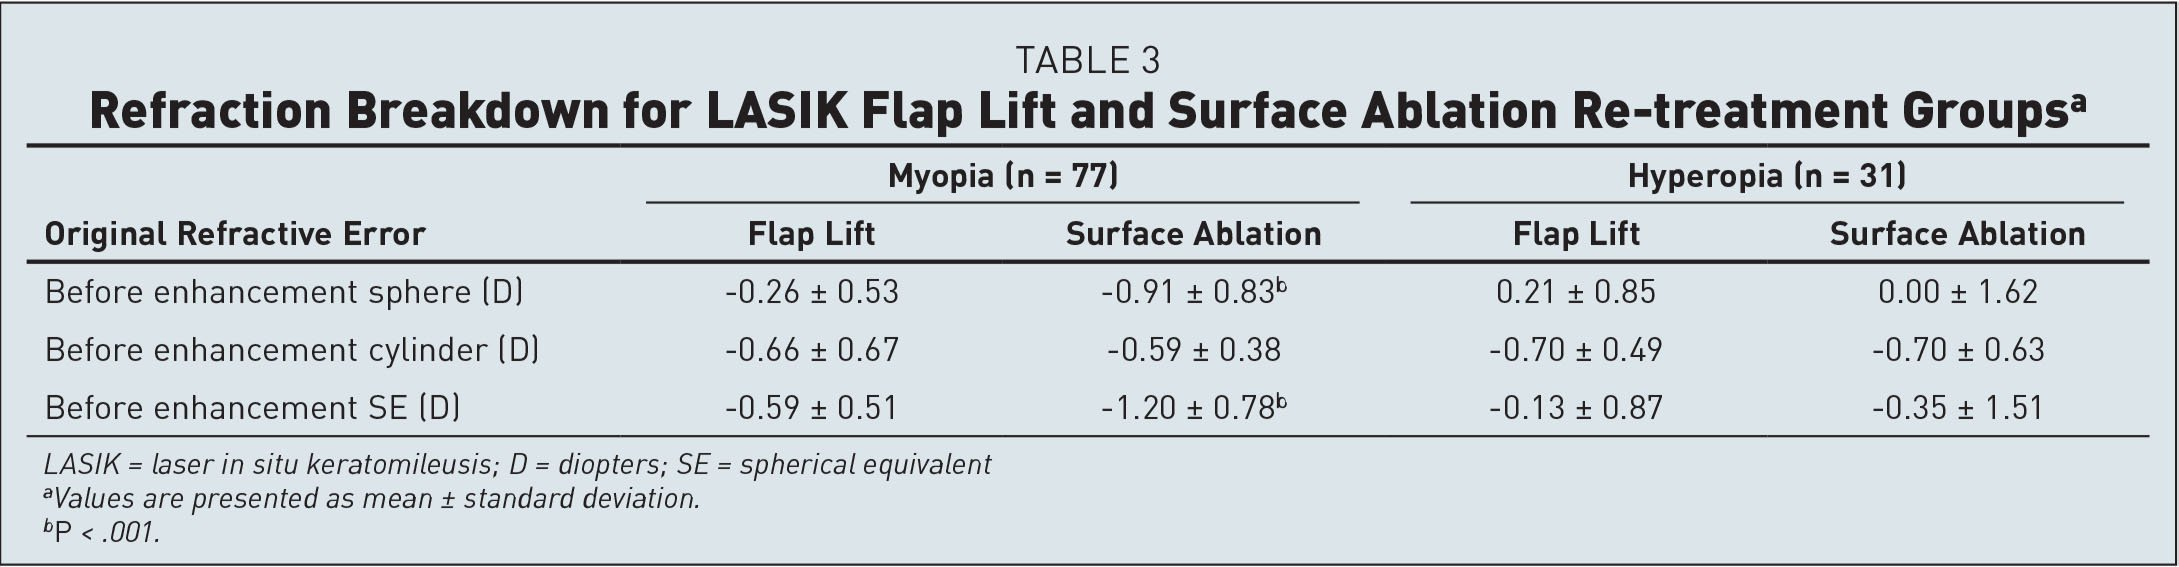 Refraction Breakdown for LASIK Flap Lift and Surface Ablation Re-treatment Groupsa